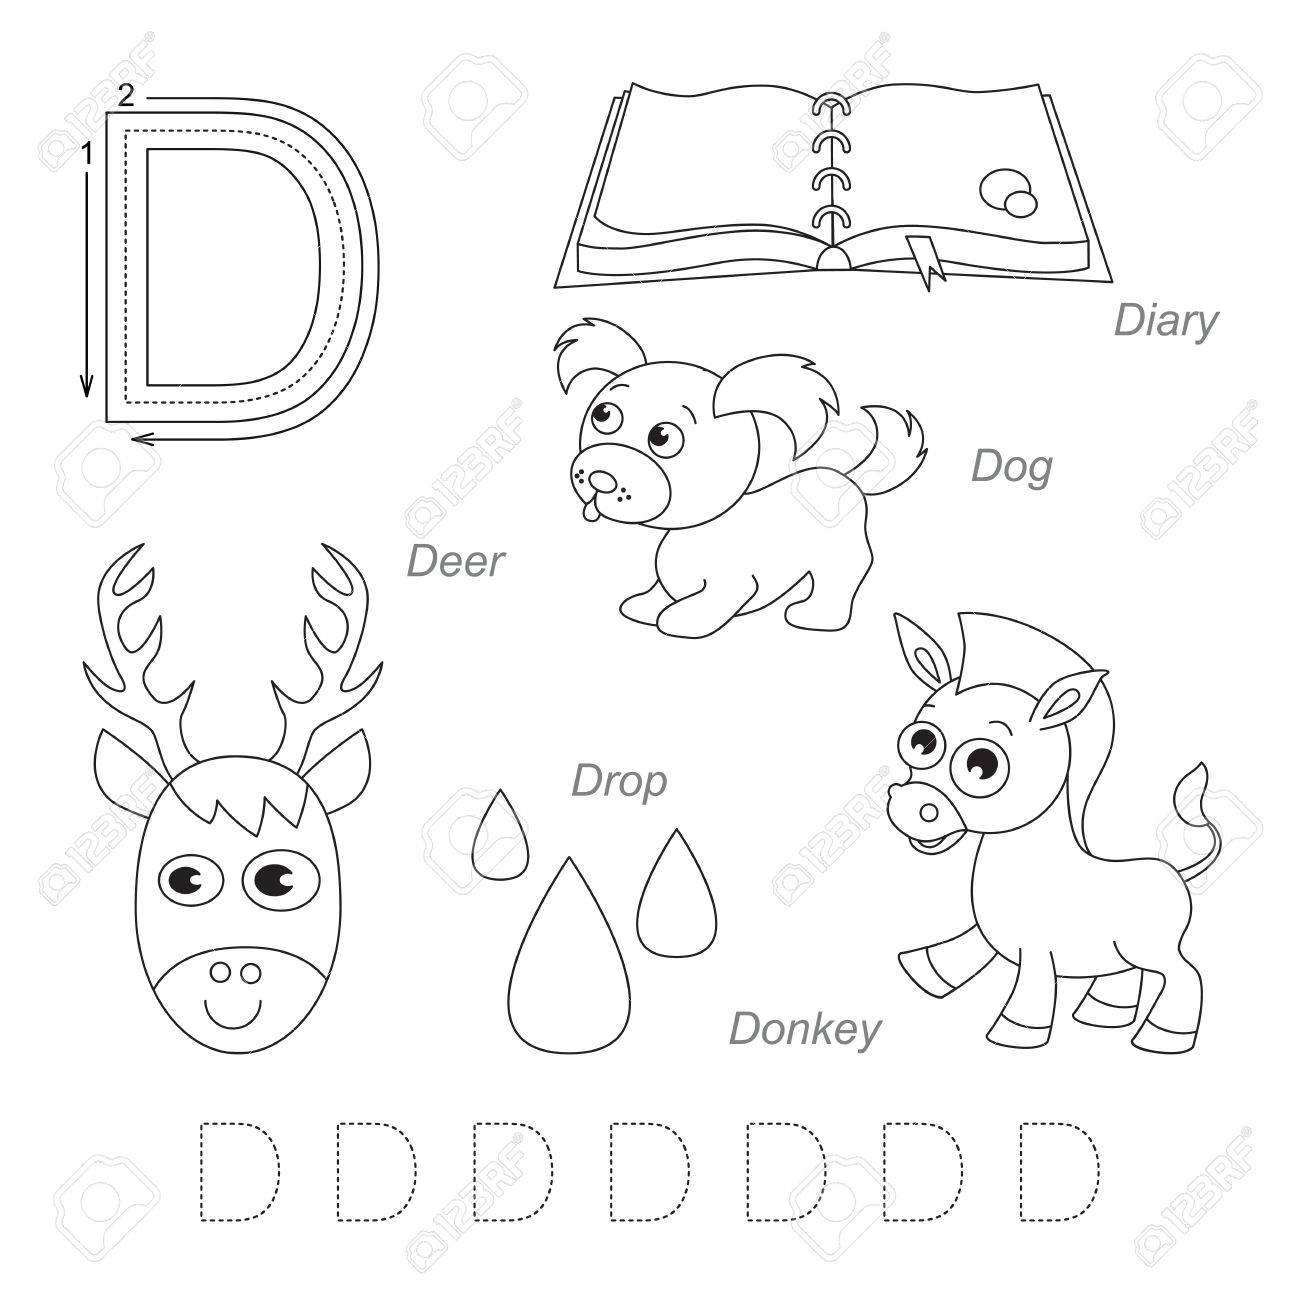 Tracing Worksheet For Children. Full English Alphabet From A To Z, Pictures  For Letter